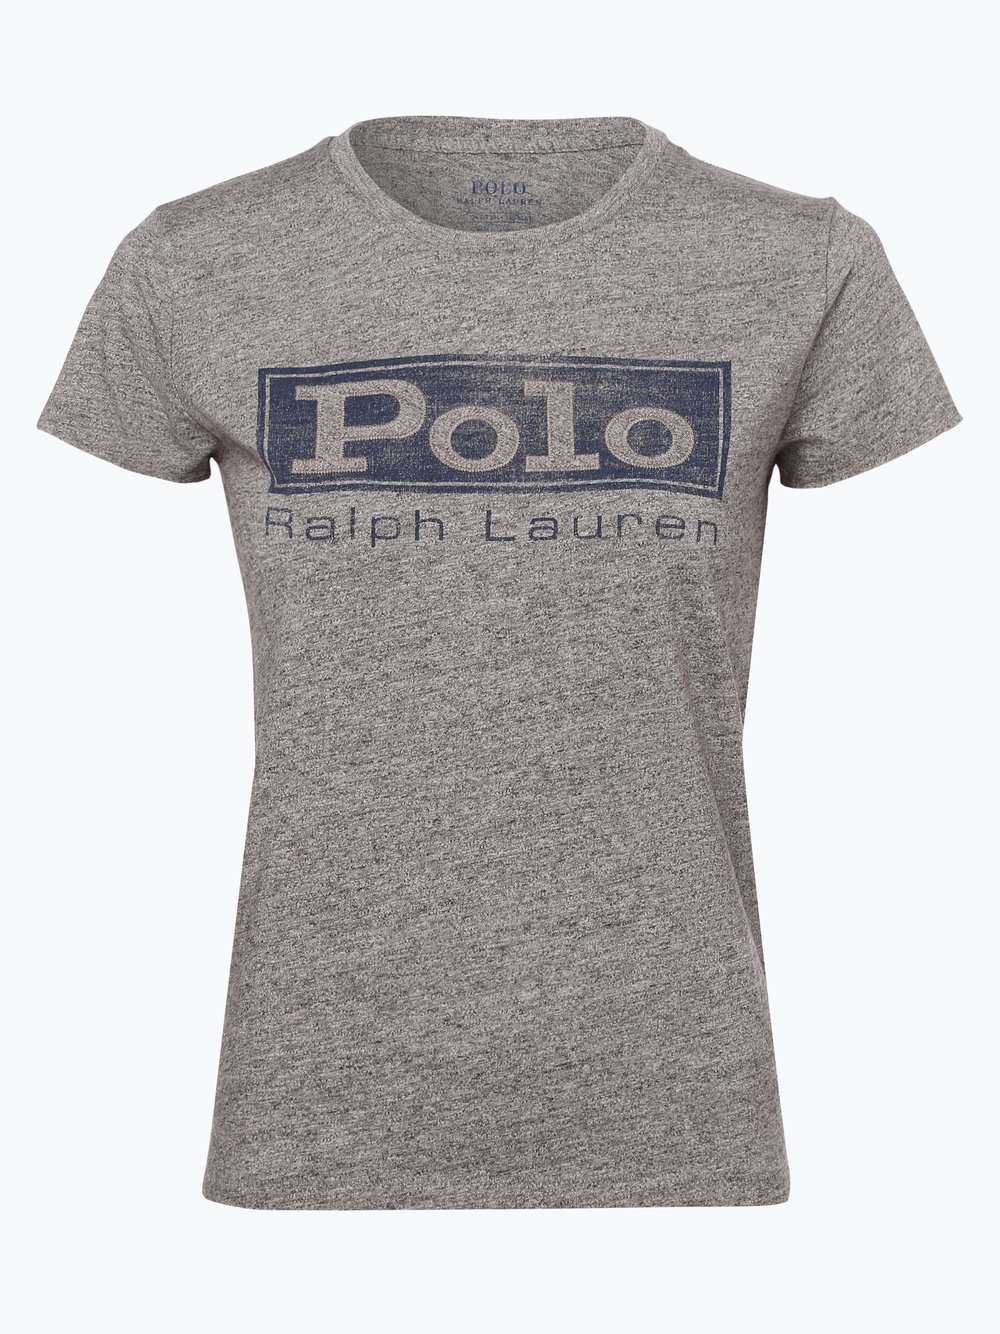 reputable site 40f21 0f24d Polo Ralph Lauren Damen T Shirts - DREAMWORKS